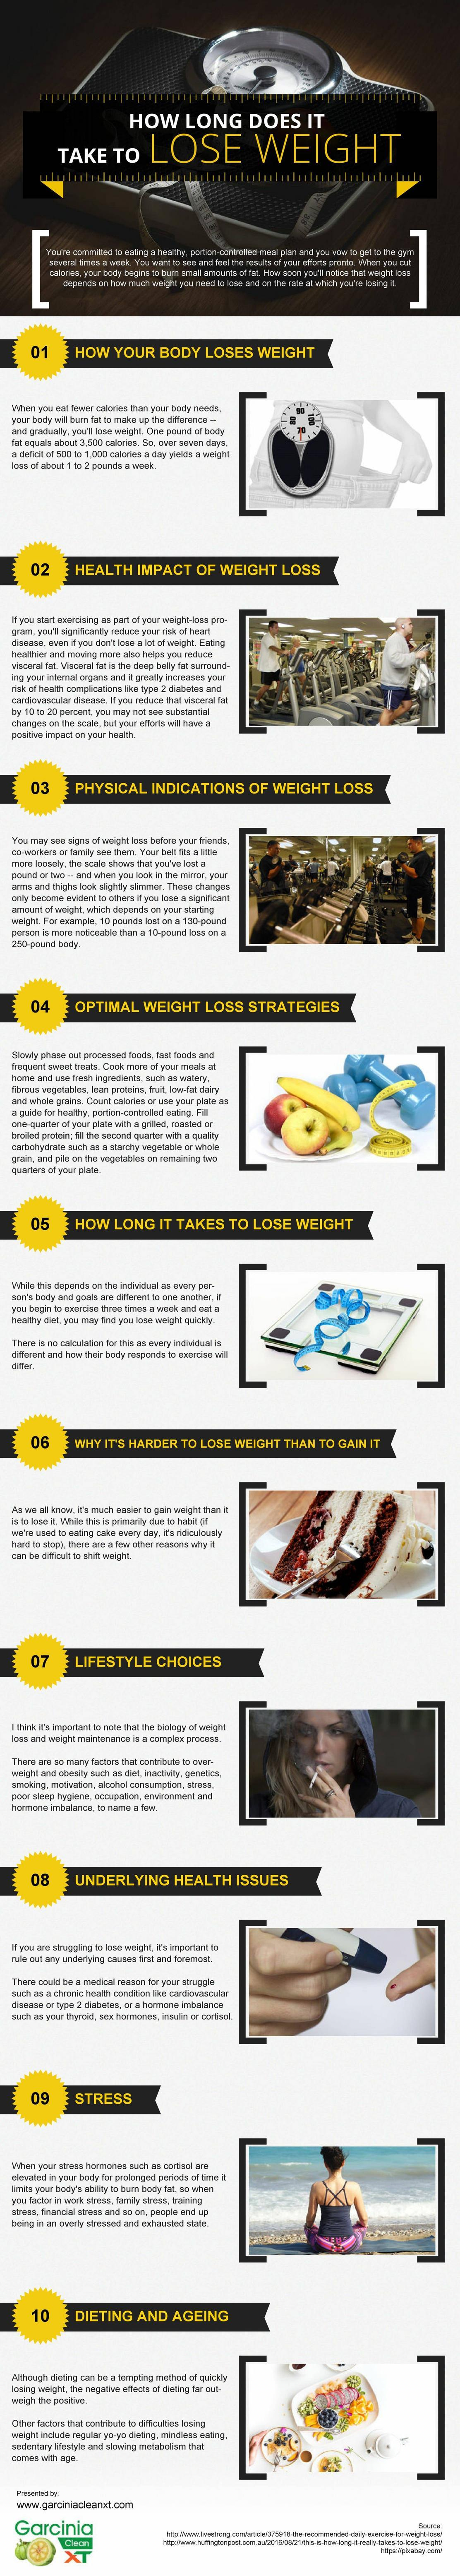 It Takes THIS Long To Start Losing Weight! - Infographic